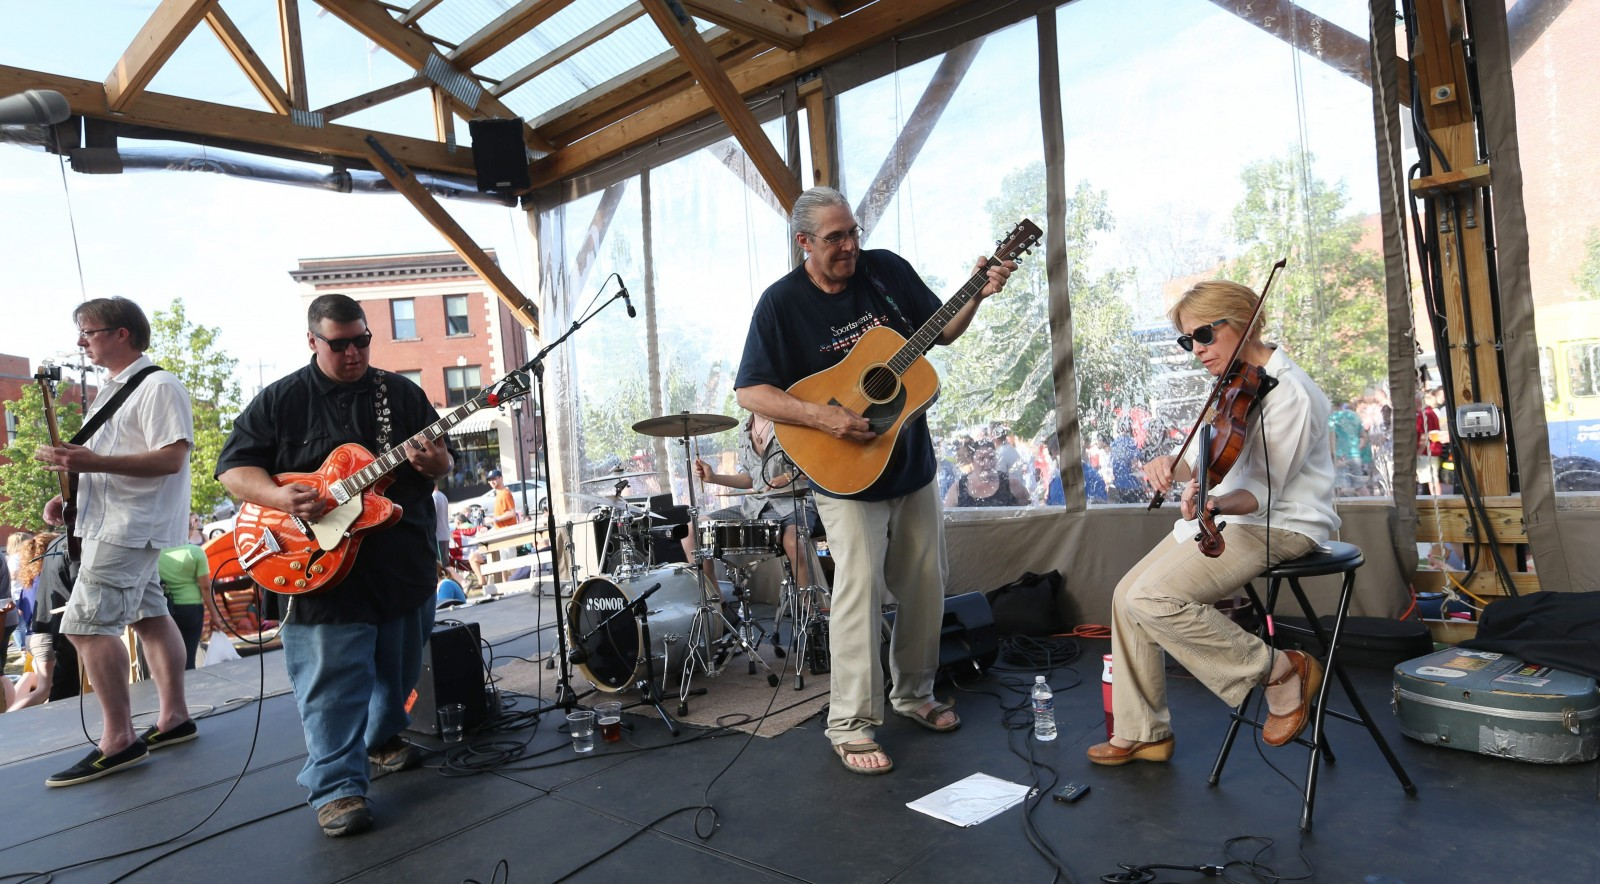 Food Truck Tuesdays at Larkvinville feature concerts by local bands like Shaky Stage, which will perform at the free event on July 28.